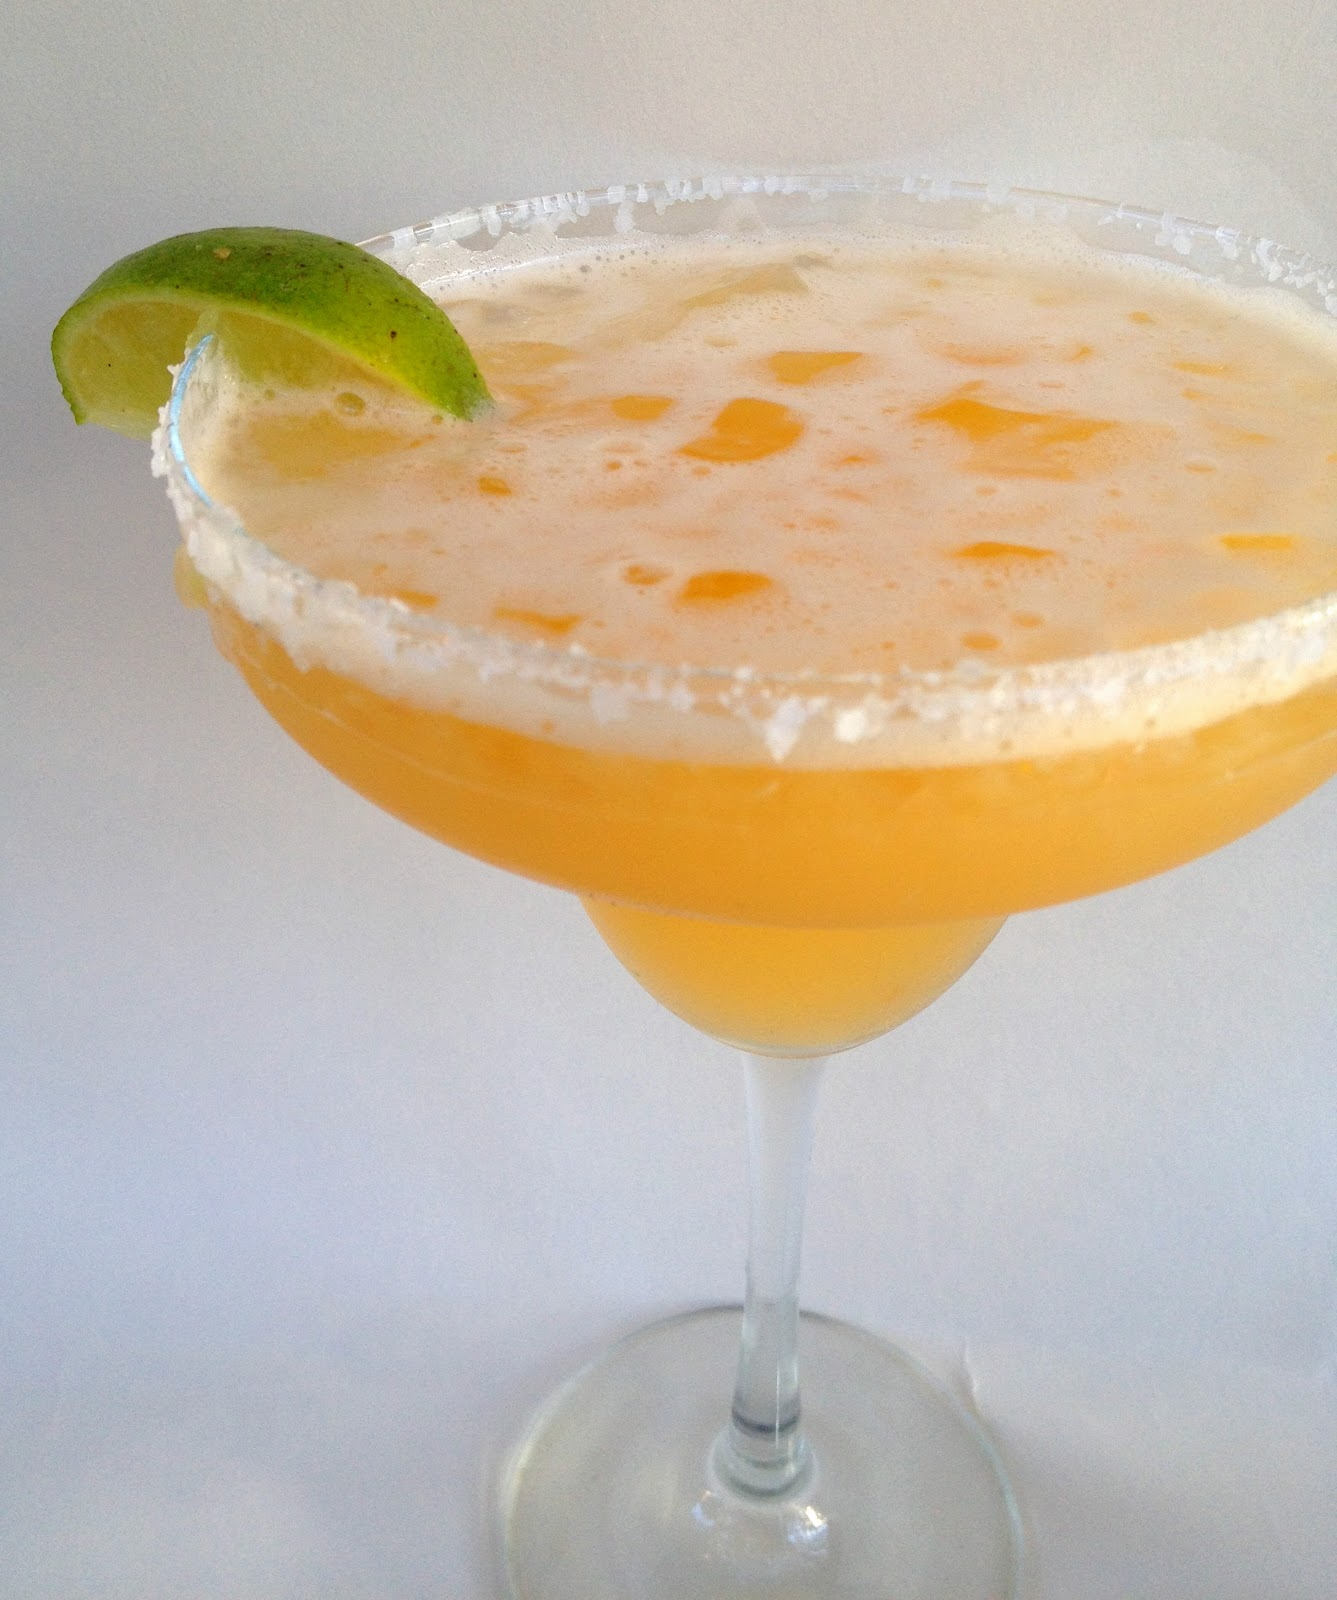 ... recipes, crafts & whimsies for spreading joy*: The Perfect Margarita